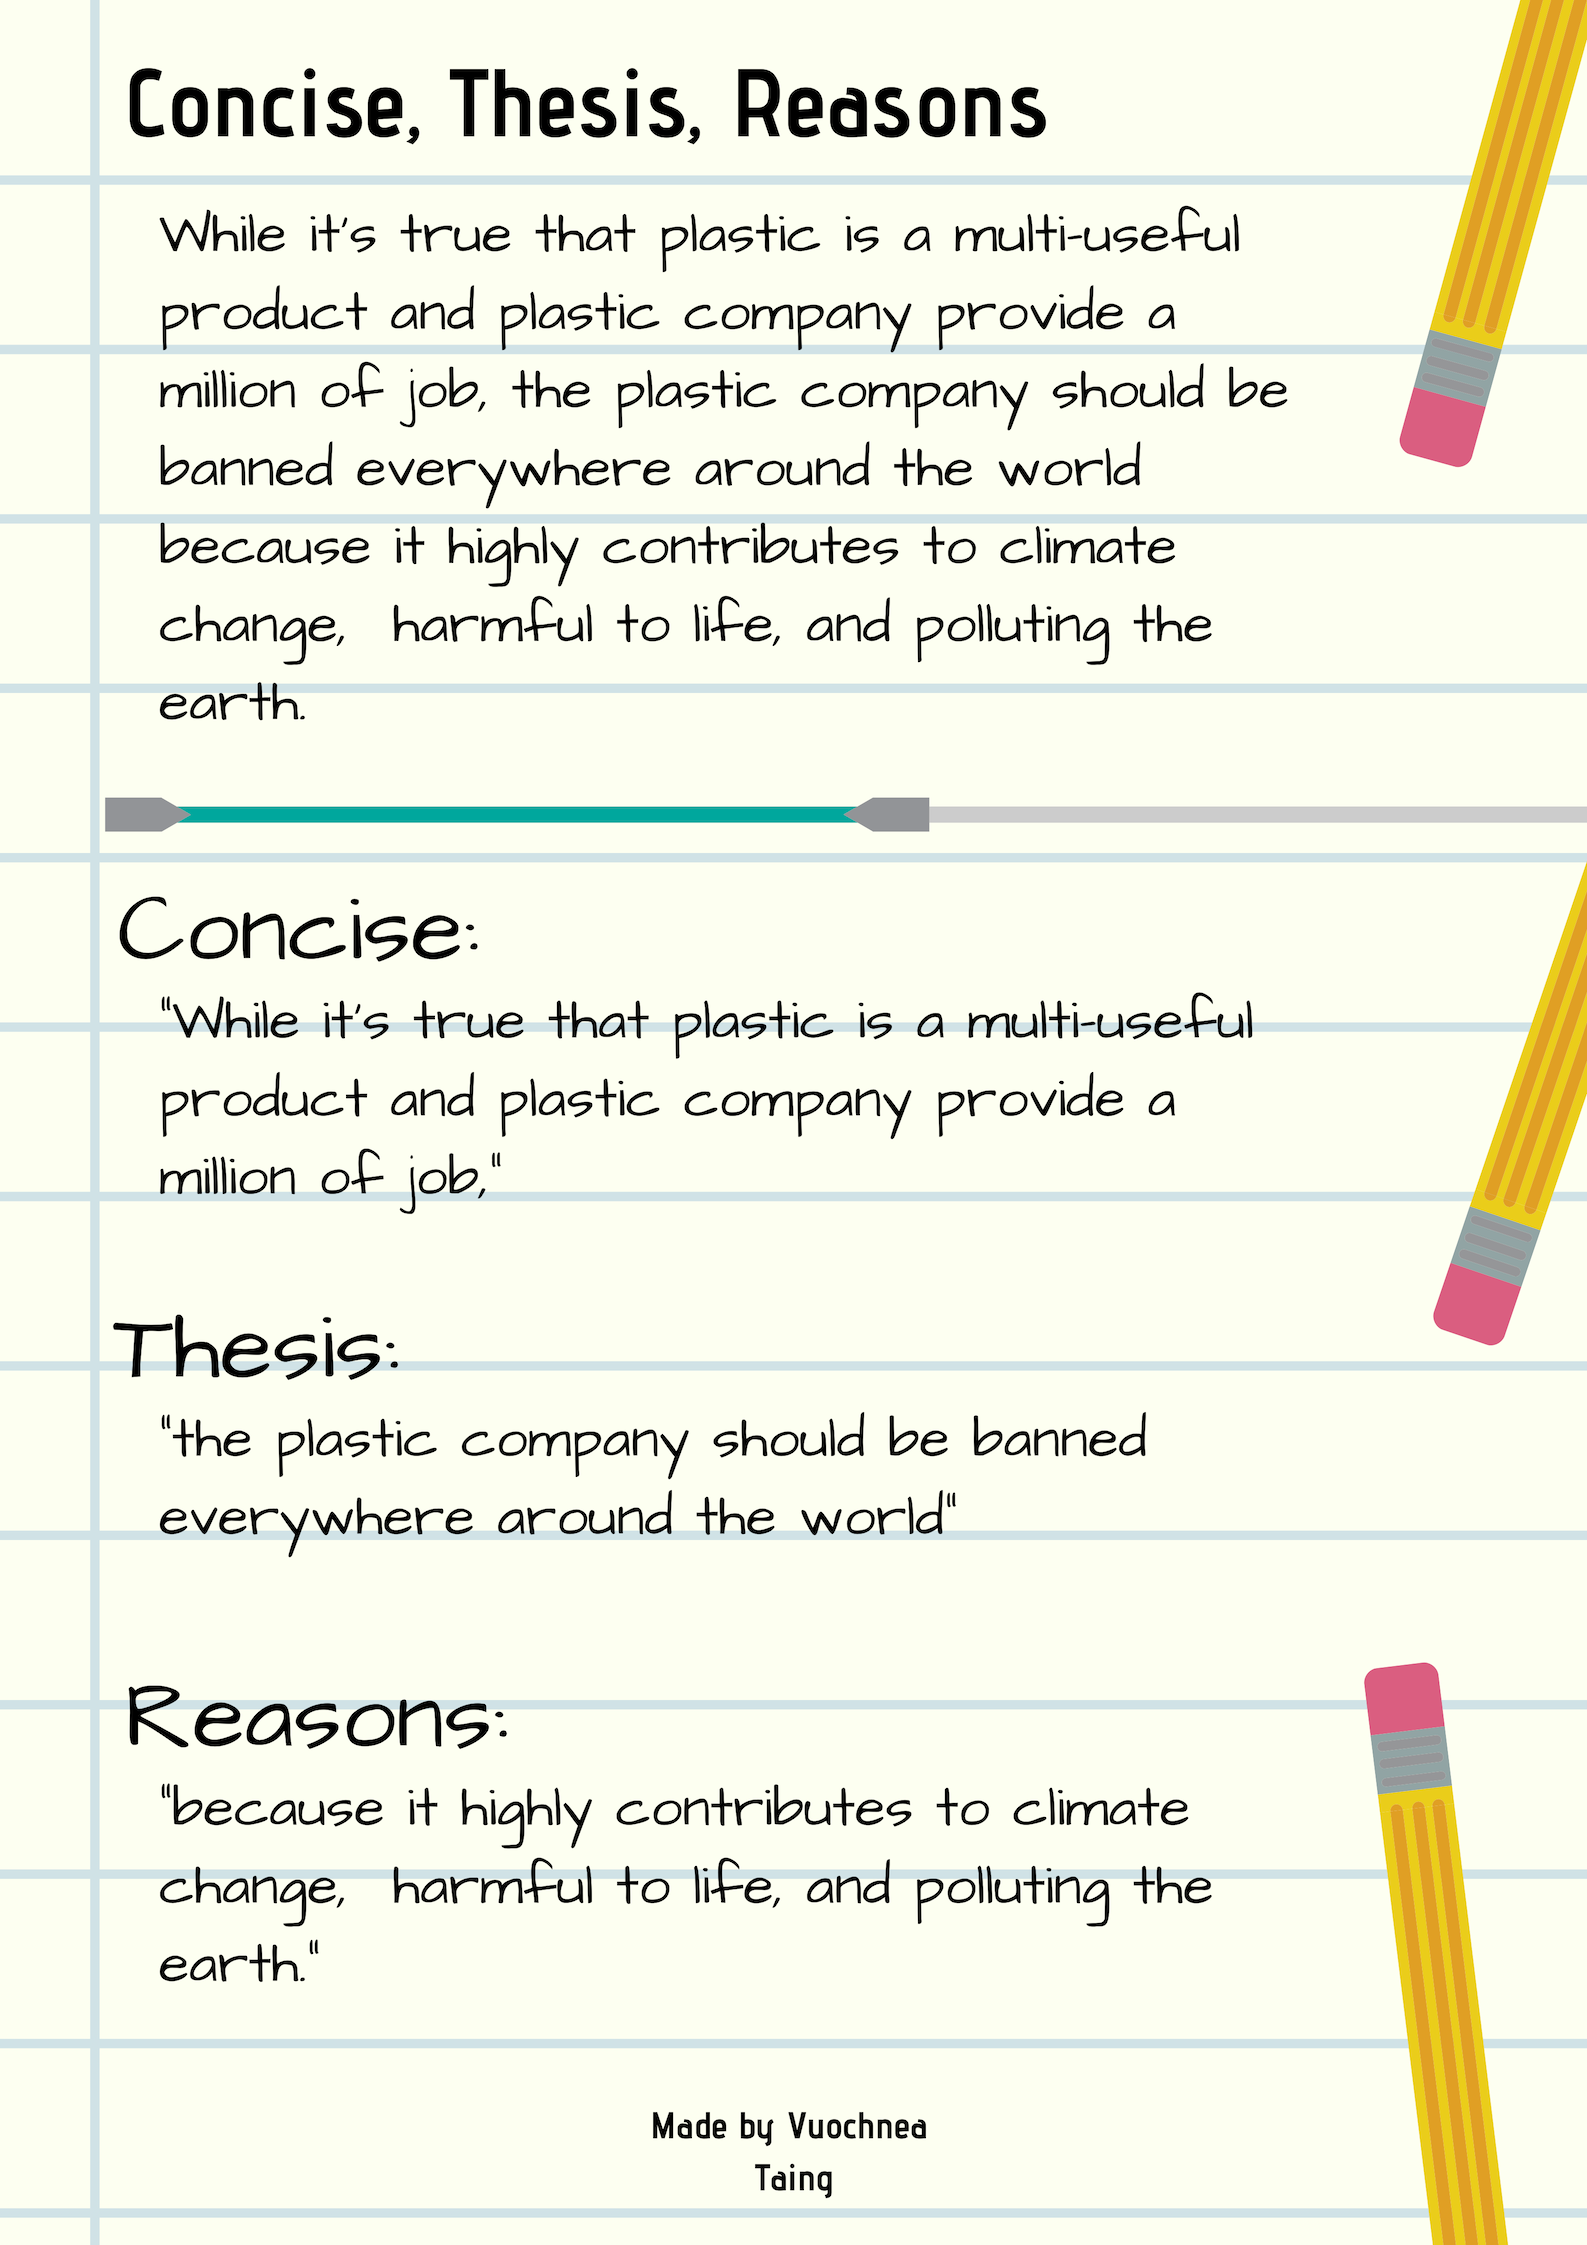 Examples of should statements in argumentative essays